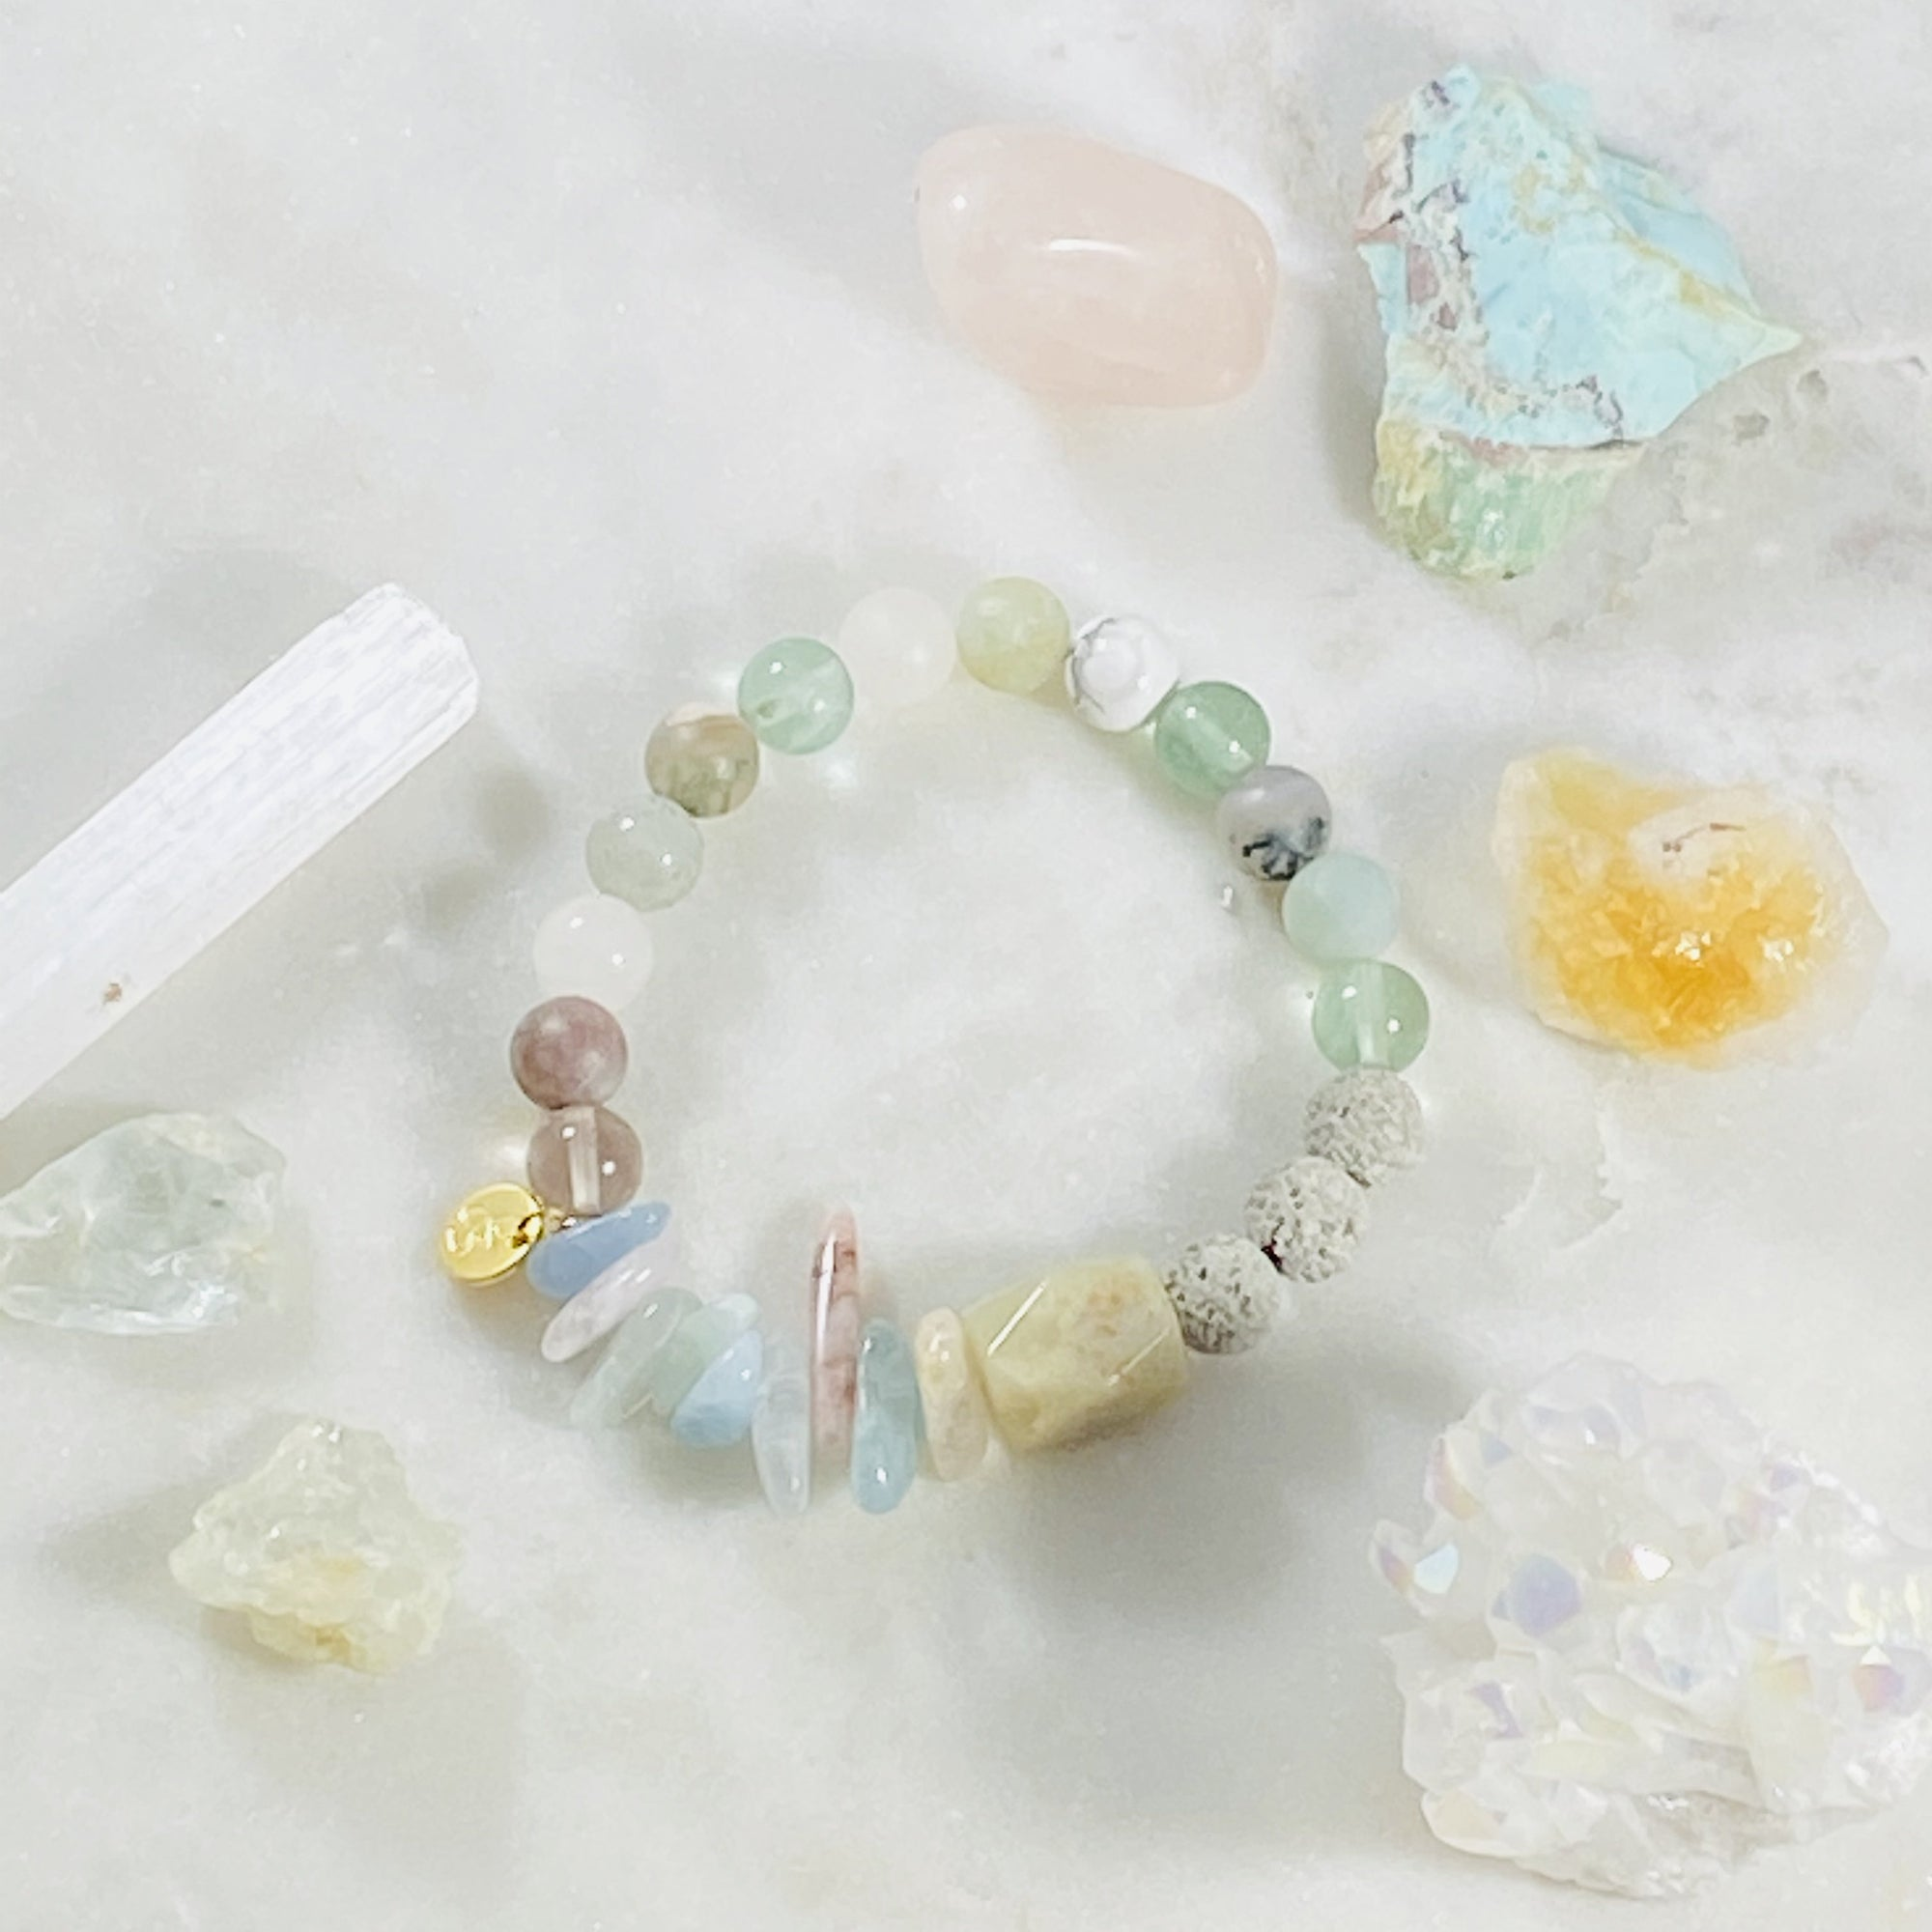 Handcrafted, intuitively designed, custom healing crystal bracelet